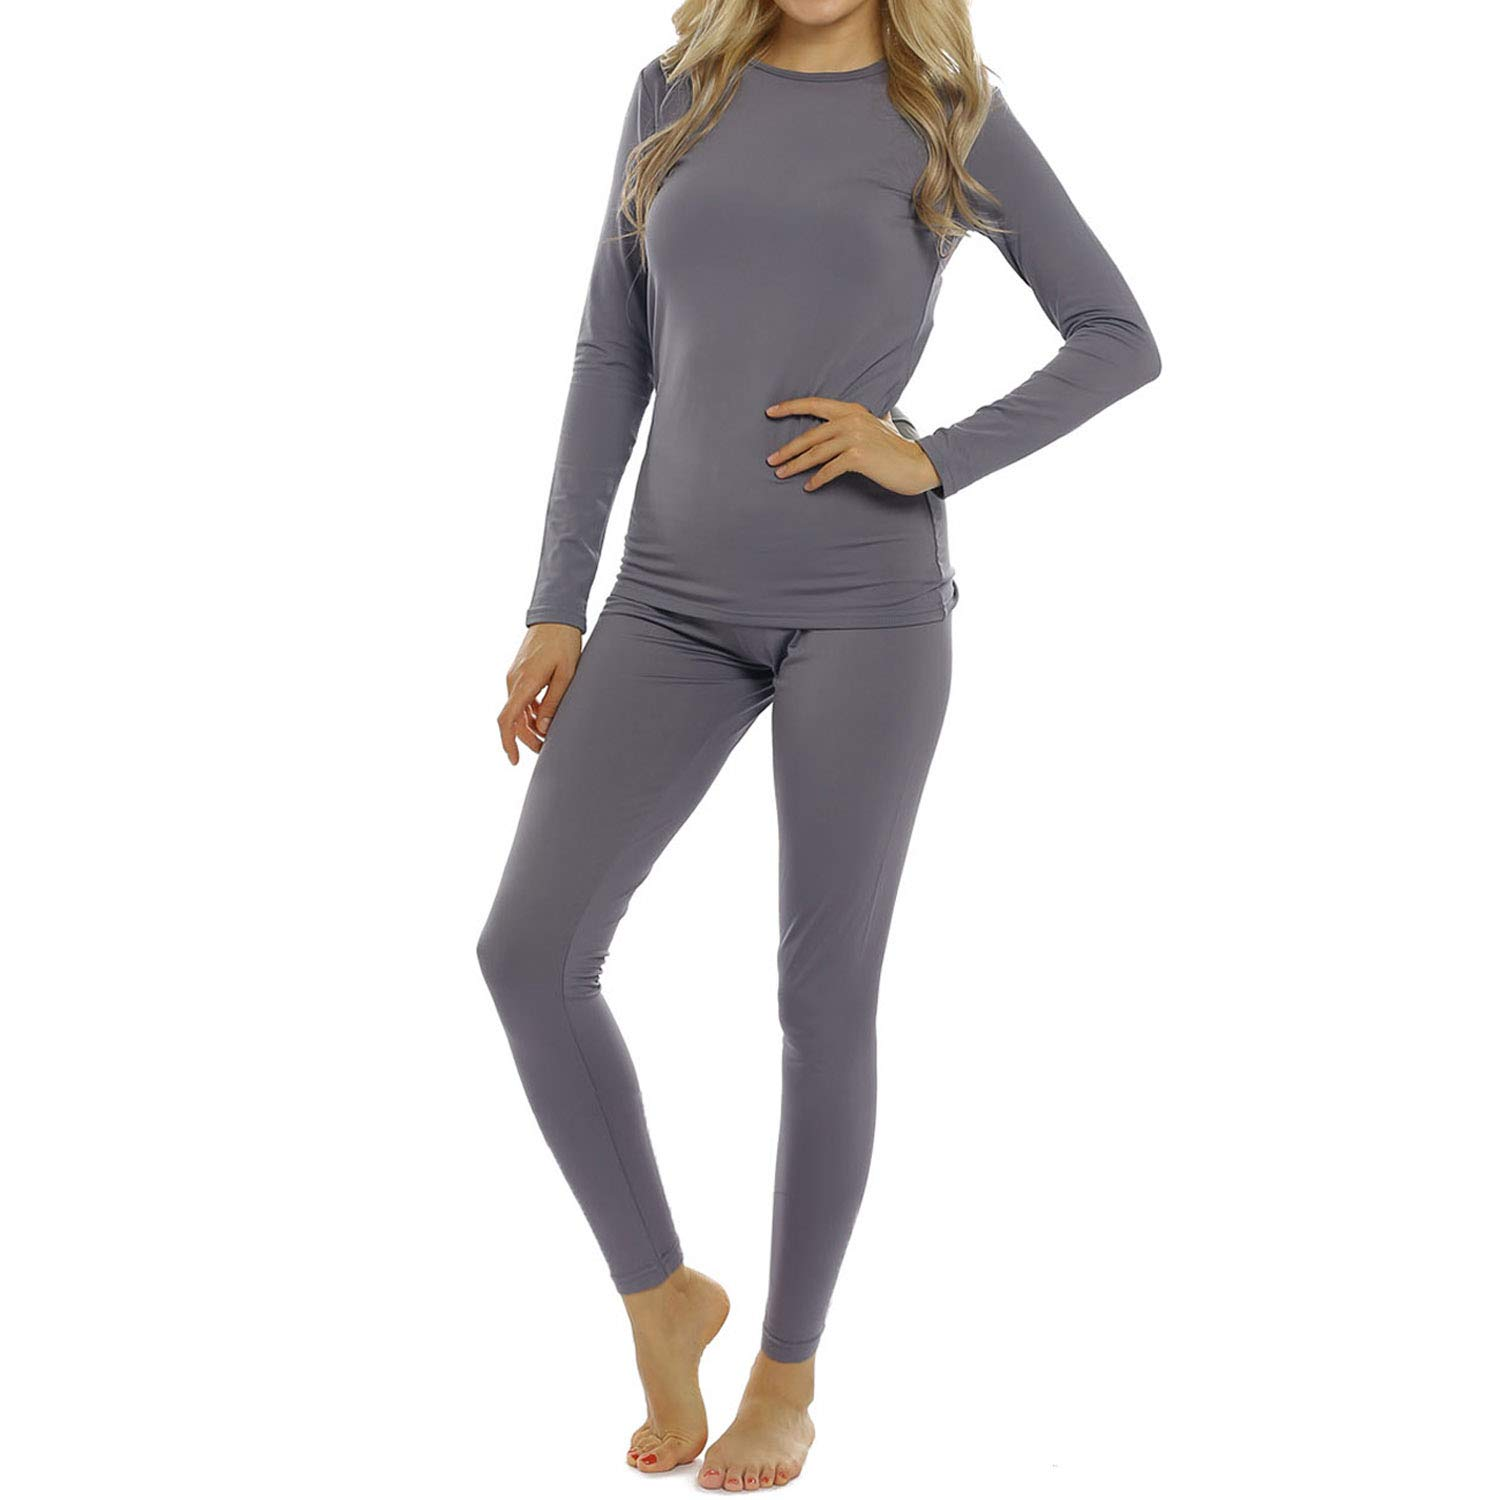 Womens Thermal Underwear Set Long Johns with Fleece Lined Ultra Soft Top & Bottom Base Layer for Women Gray by ViCherub